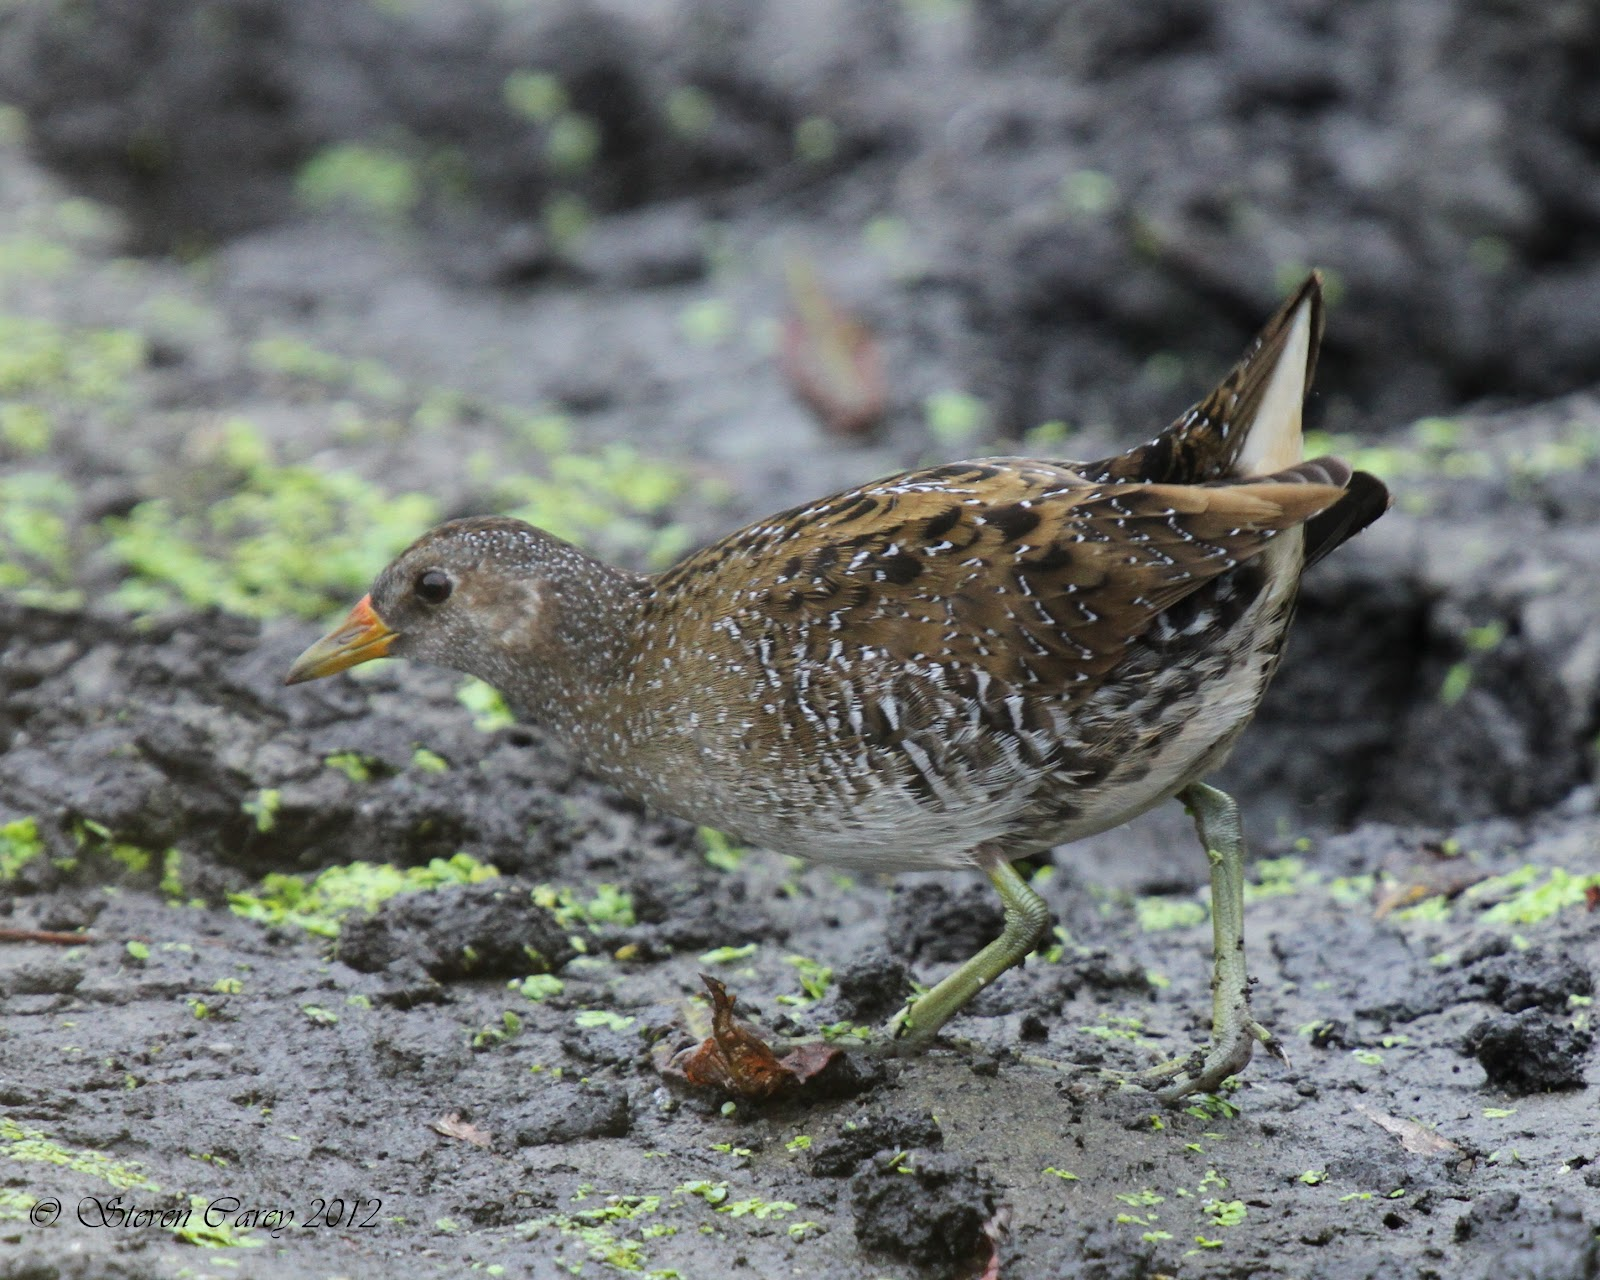 Steve Carey Bird Photography: Spotted Crake (Porzana porzana)